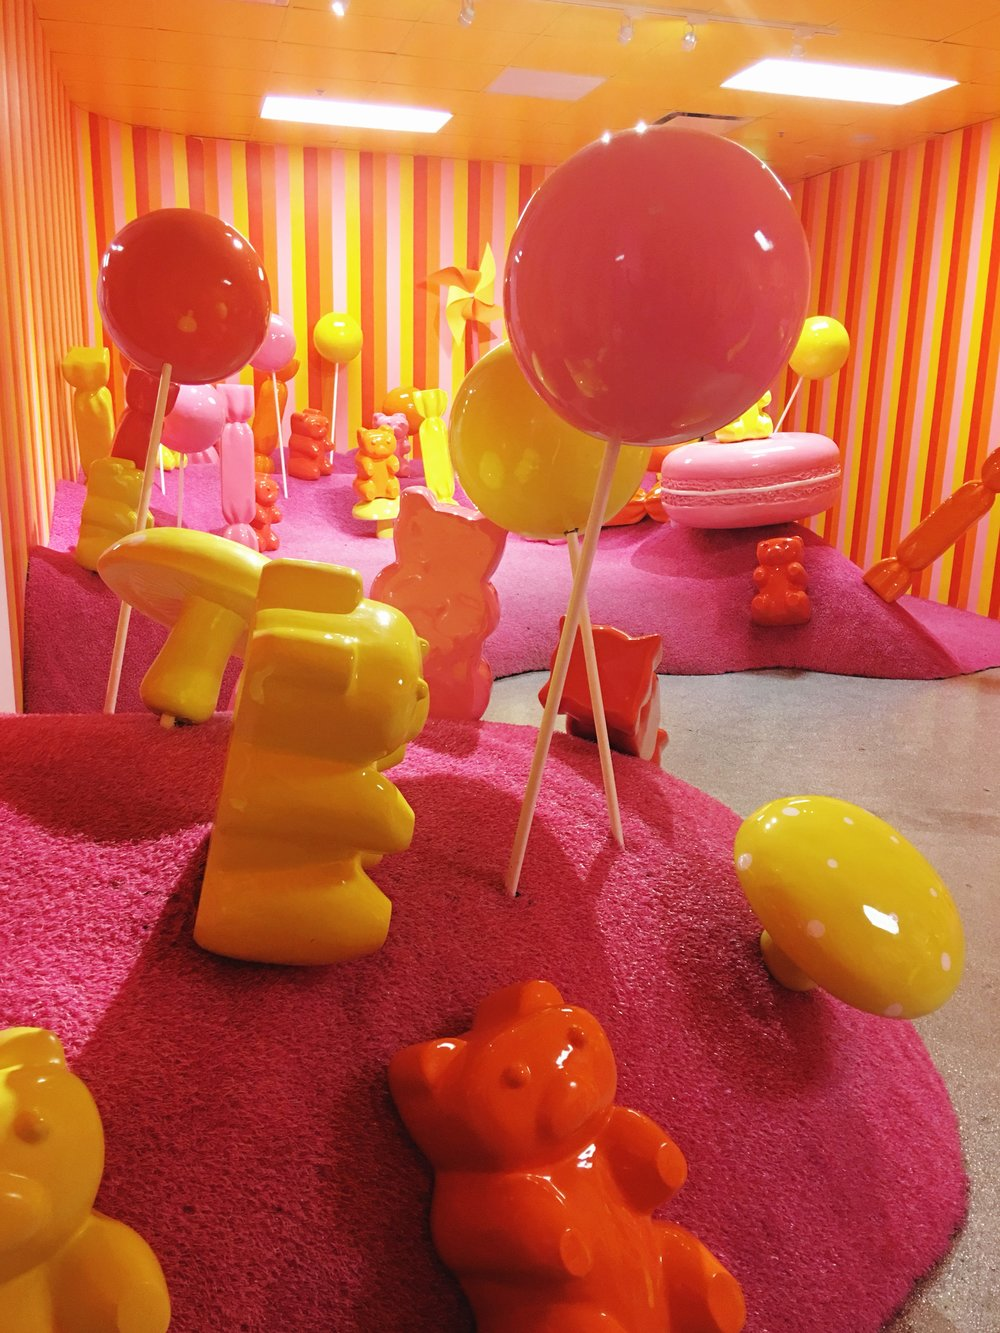 Giant gummy bears, candy land, museum of ice cream